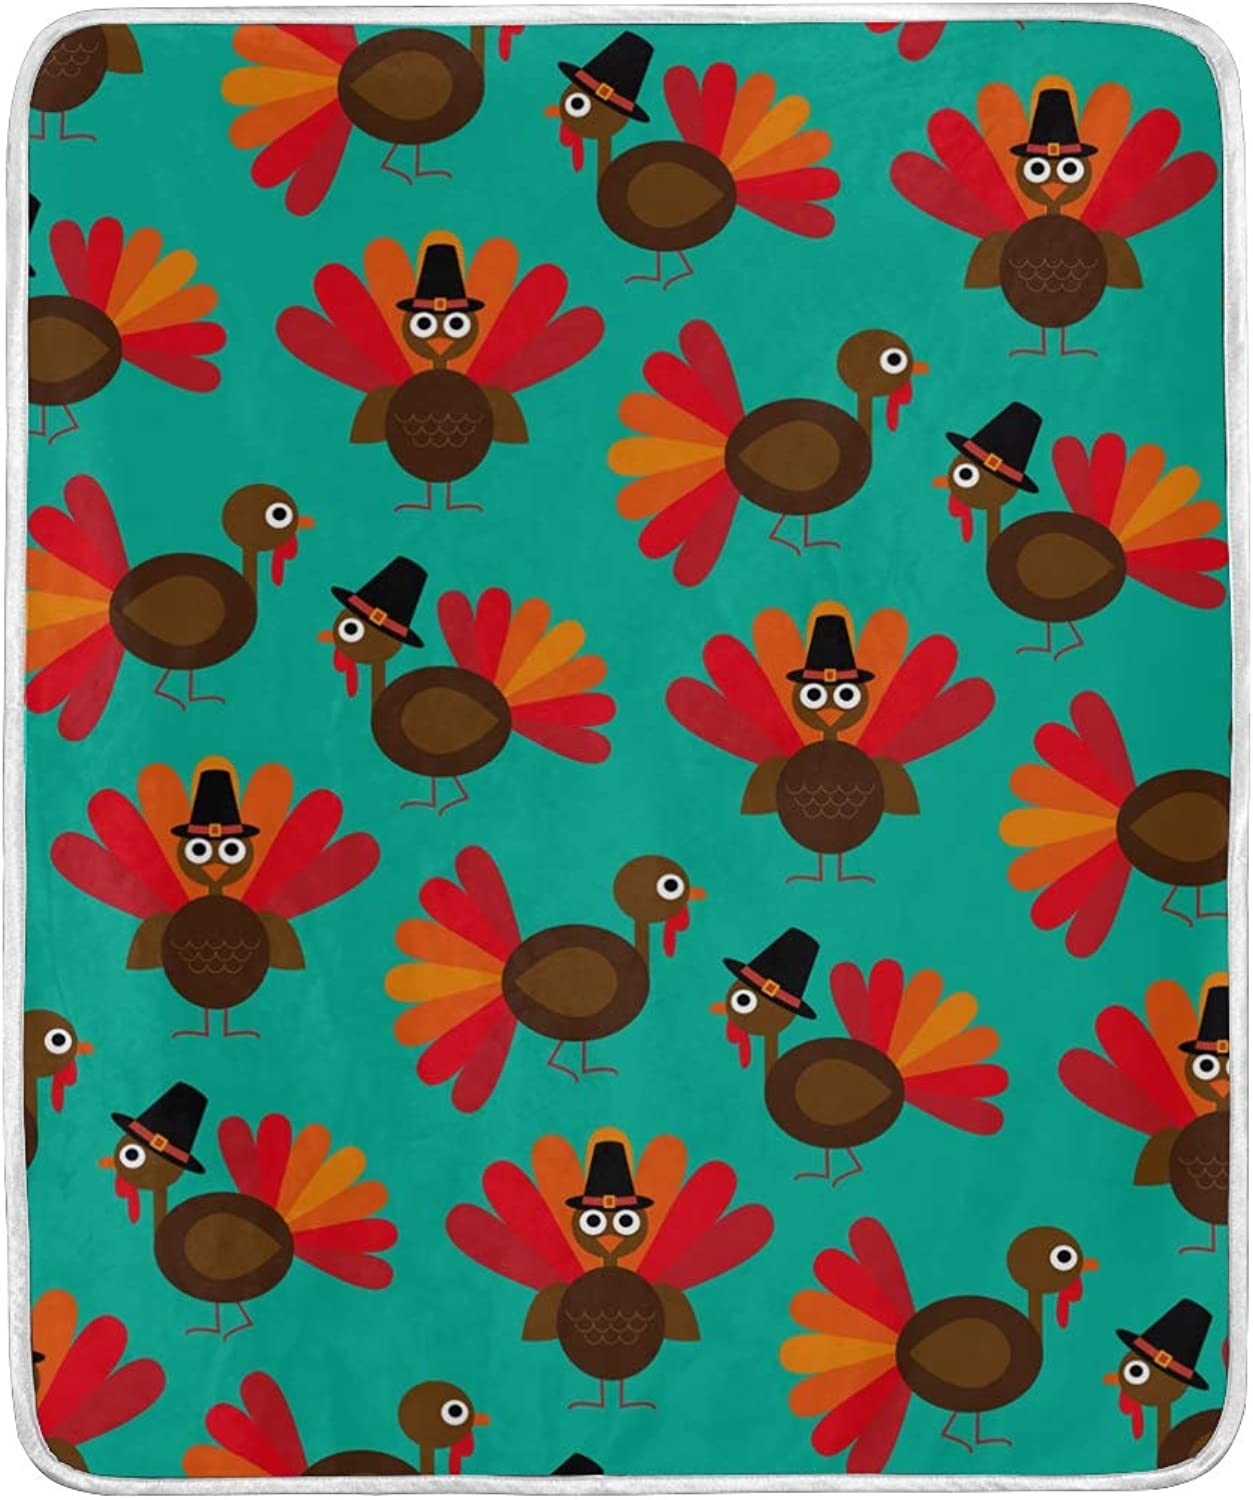 ColourLife Soft Microfiber Blanket Cute Thanksgiving Turkey Pattern Throw Cozy Warm Flannel Fleece Blanket for Kids Women Bed Sofa Couch Beach 50x60 inches